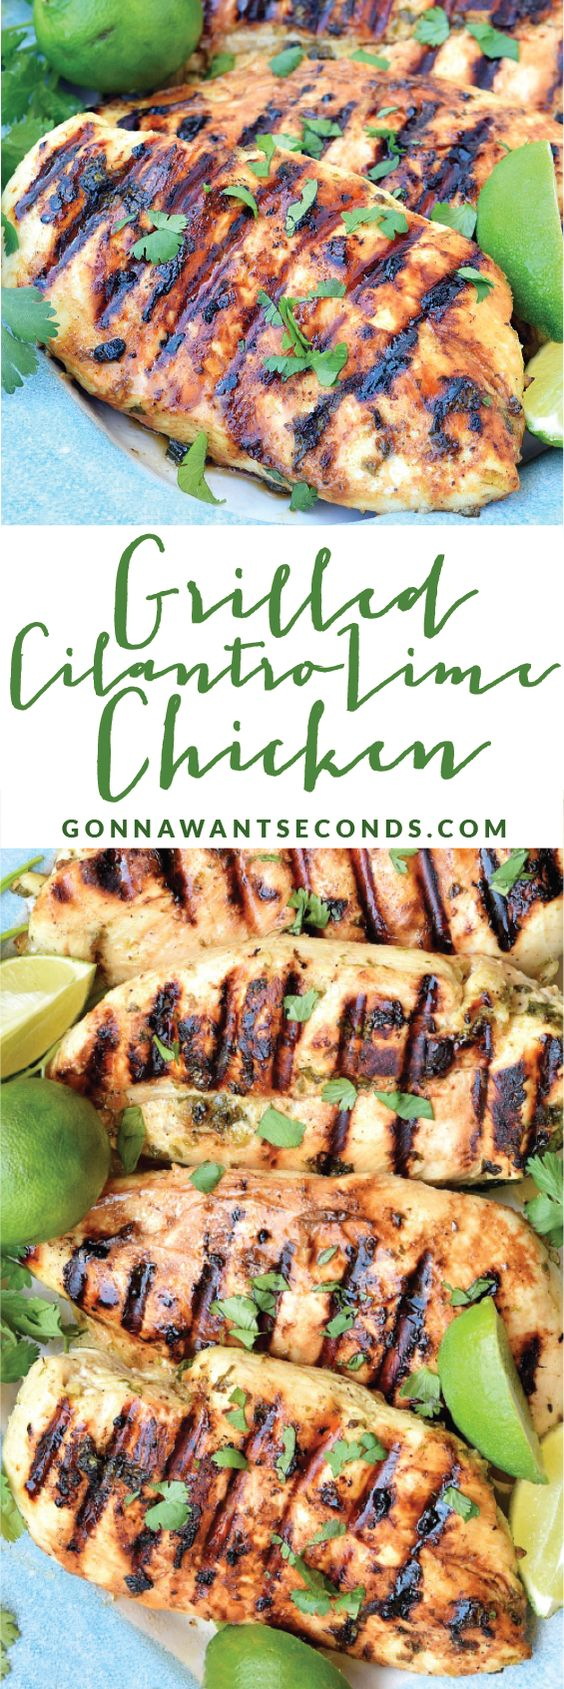 Grilled Cilantro Lime Chicken-This chicken is marinated in a zesty combo of fresh lime juice, garlic and cilantro. The flavors are refreshingly delicious and really permeate the chicken. It's also the perfect chicken to use in tacos or in a salad.